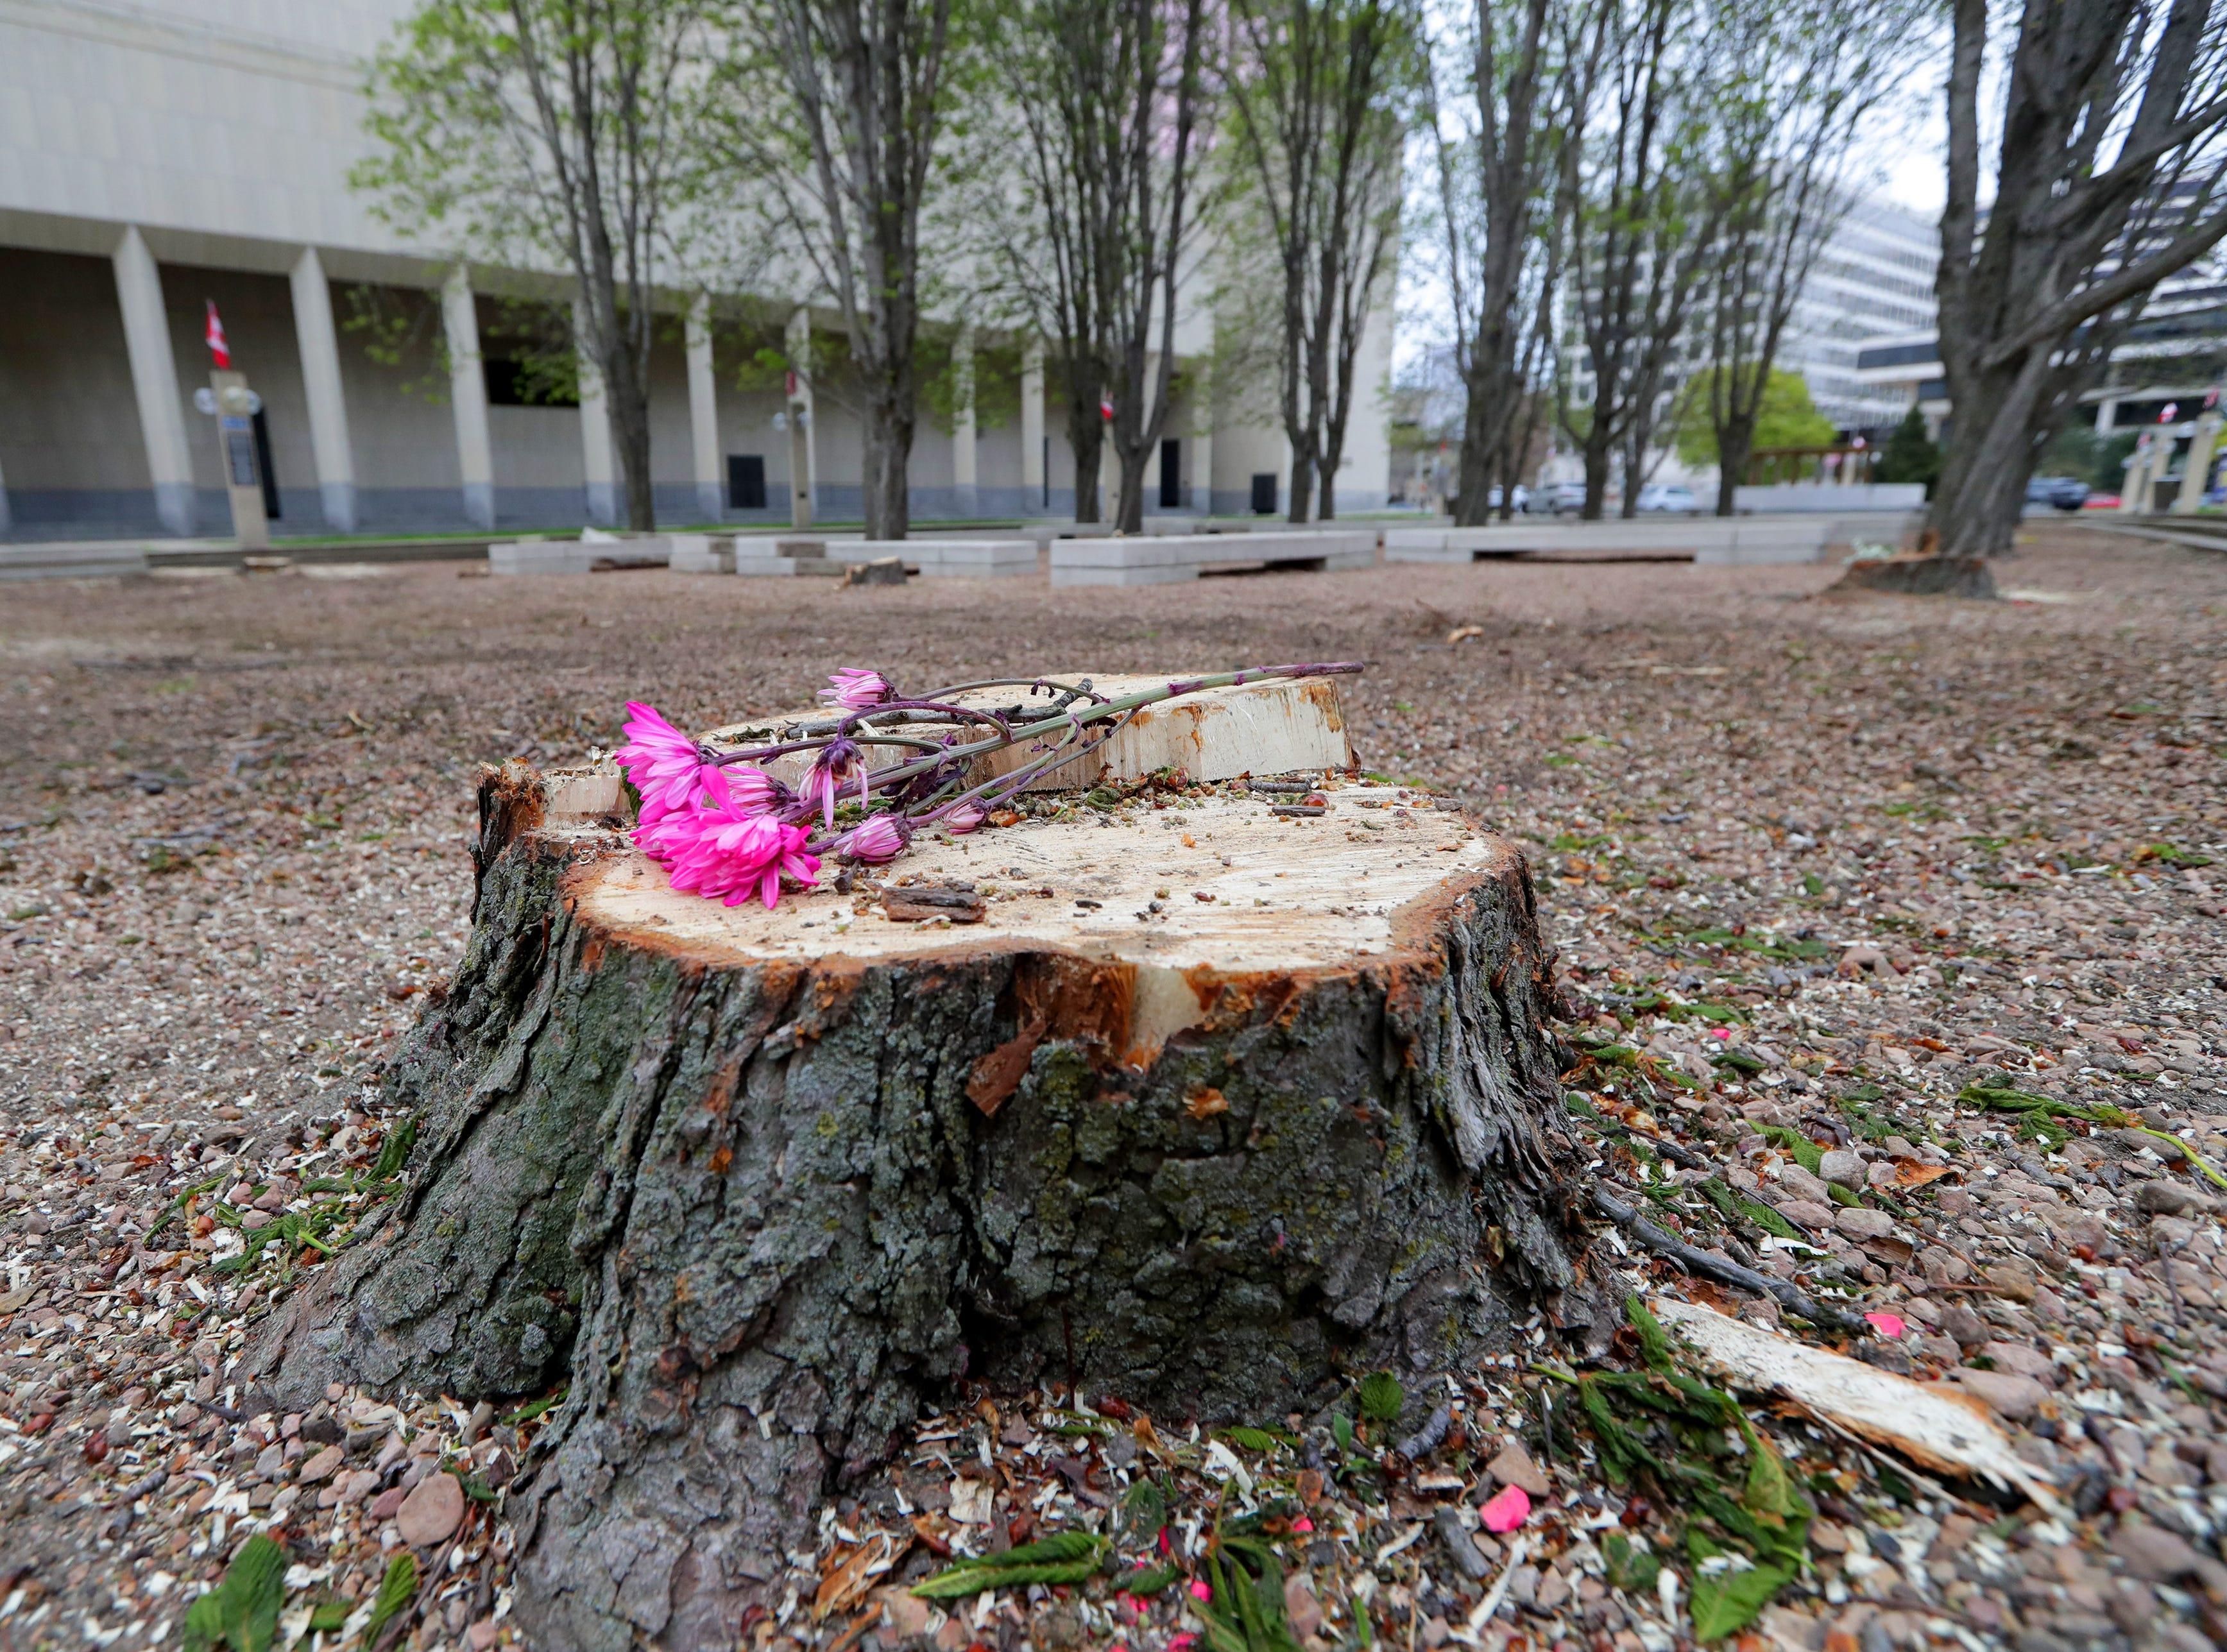 A flower has been placed on a tree stump in the sunken grove outside the Marcus Center for the Performing Arts in Milwaukee.